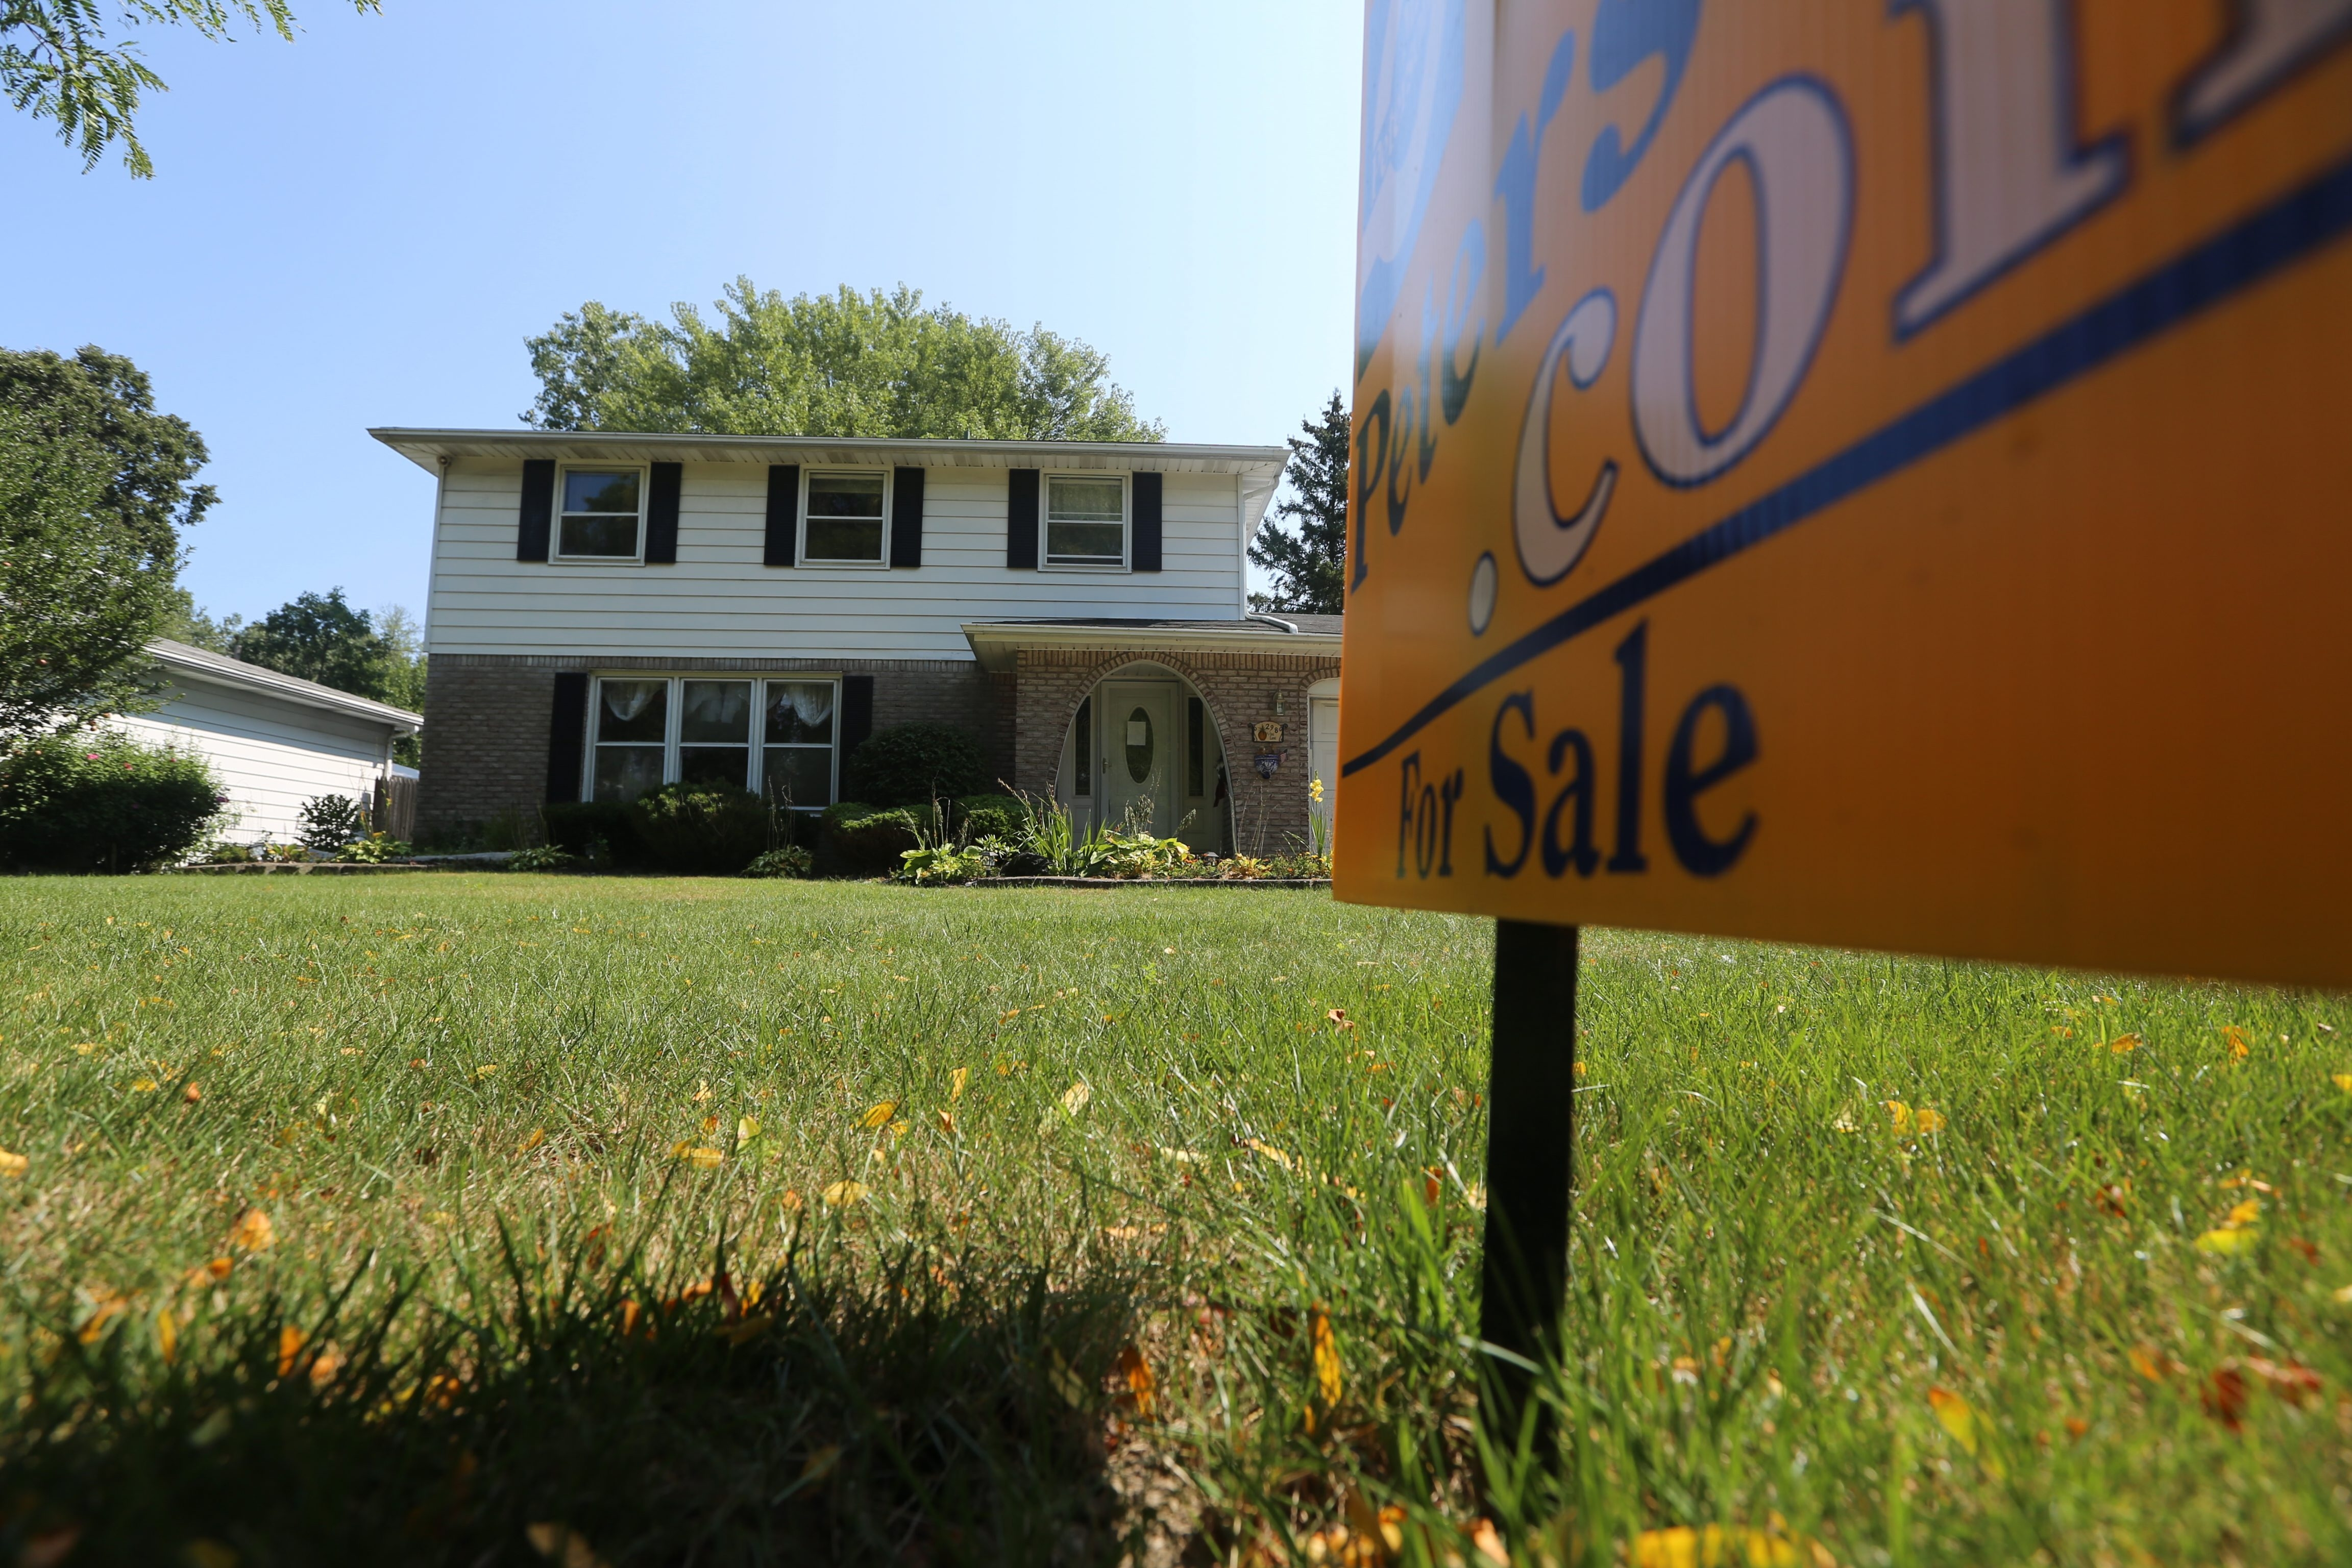 New listings of homes for sale, like this one in Amherst last year, declined in January despite relatively mild winter weather.